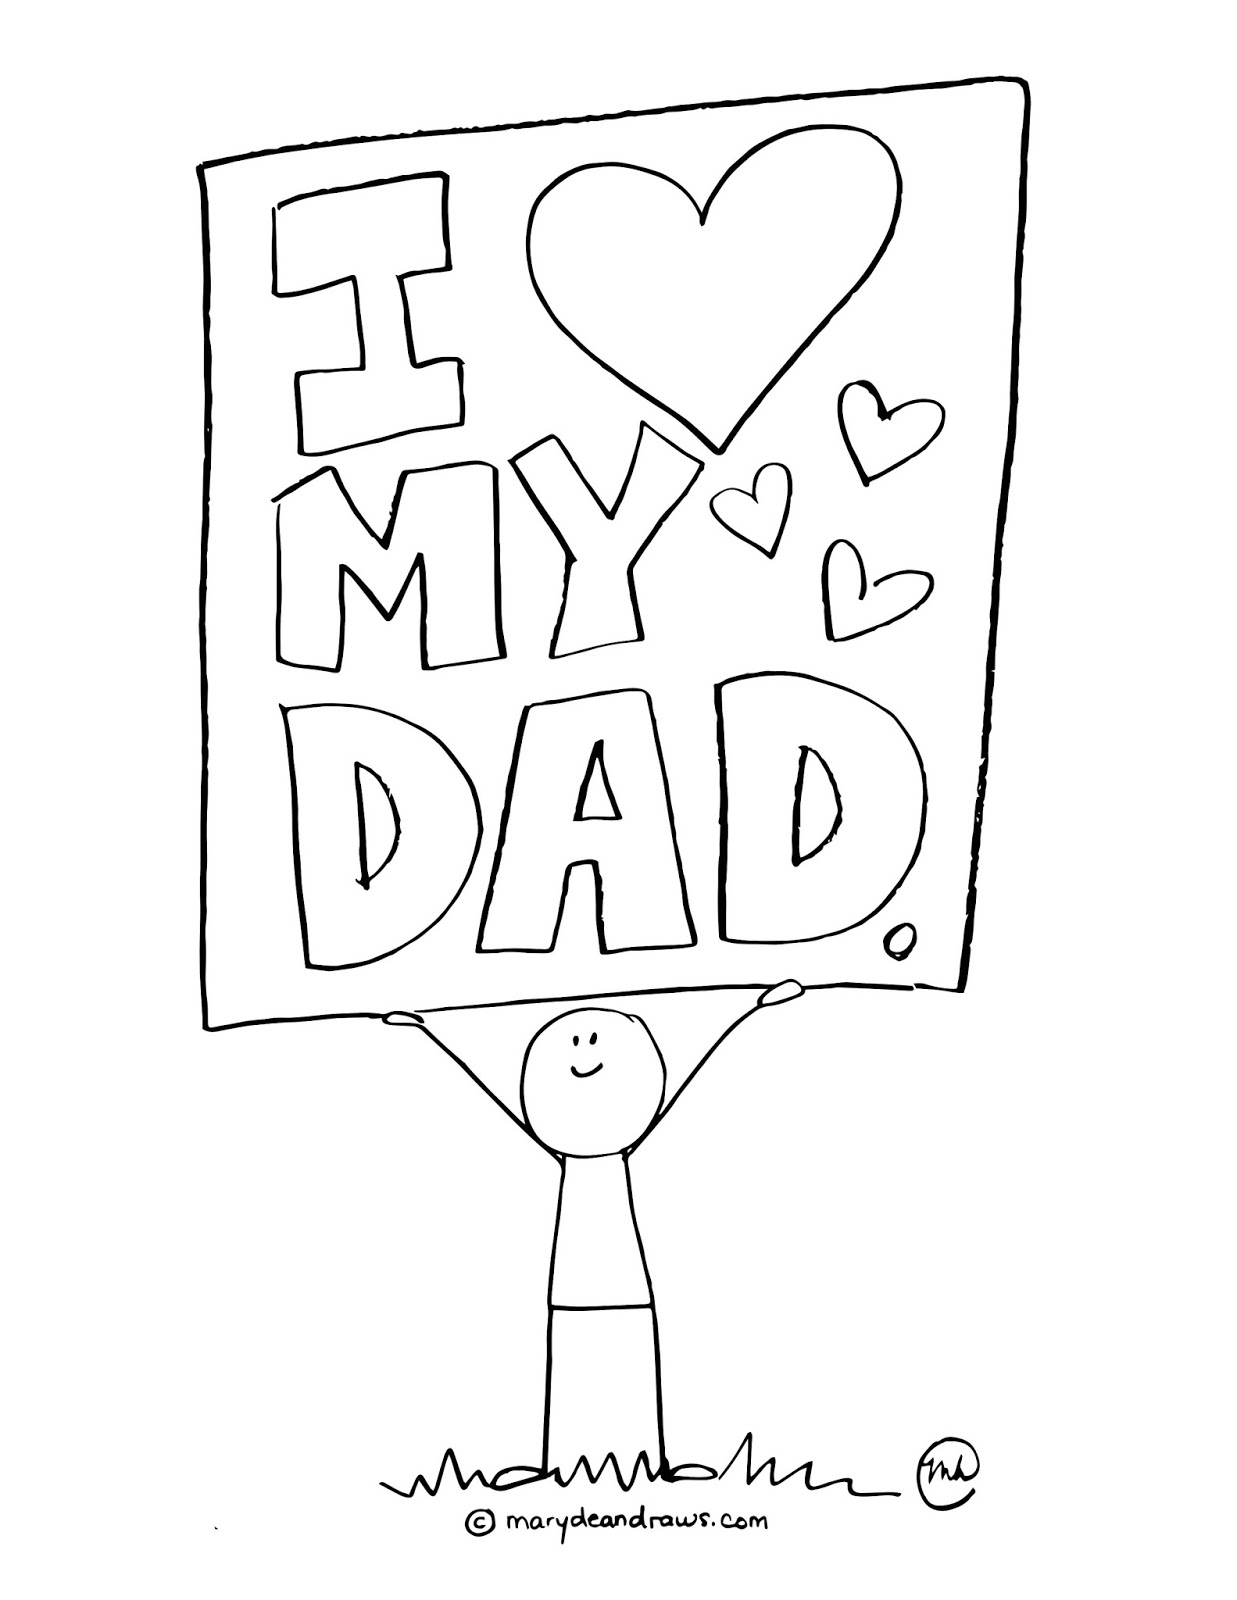 father day coloring page printable - a father 39 s day printable coloring page marydean draws